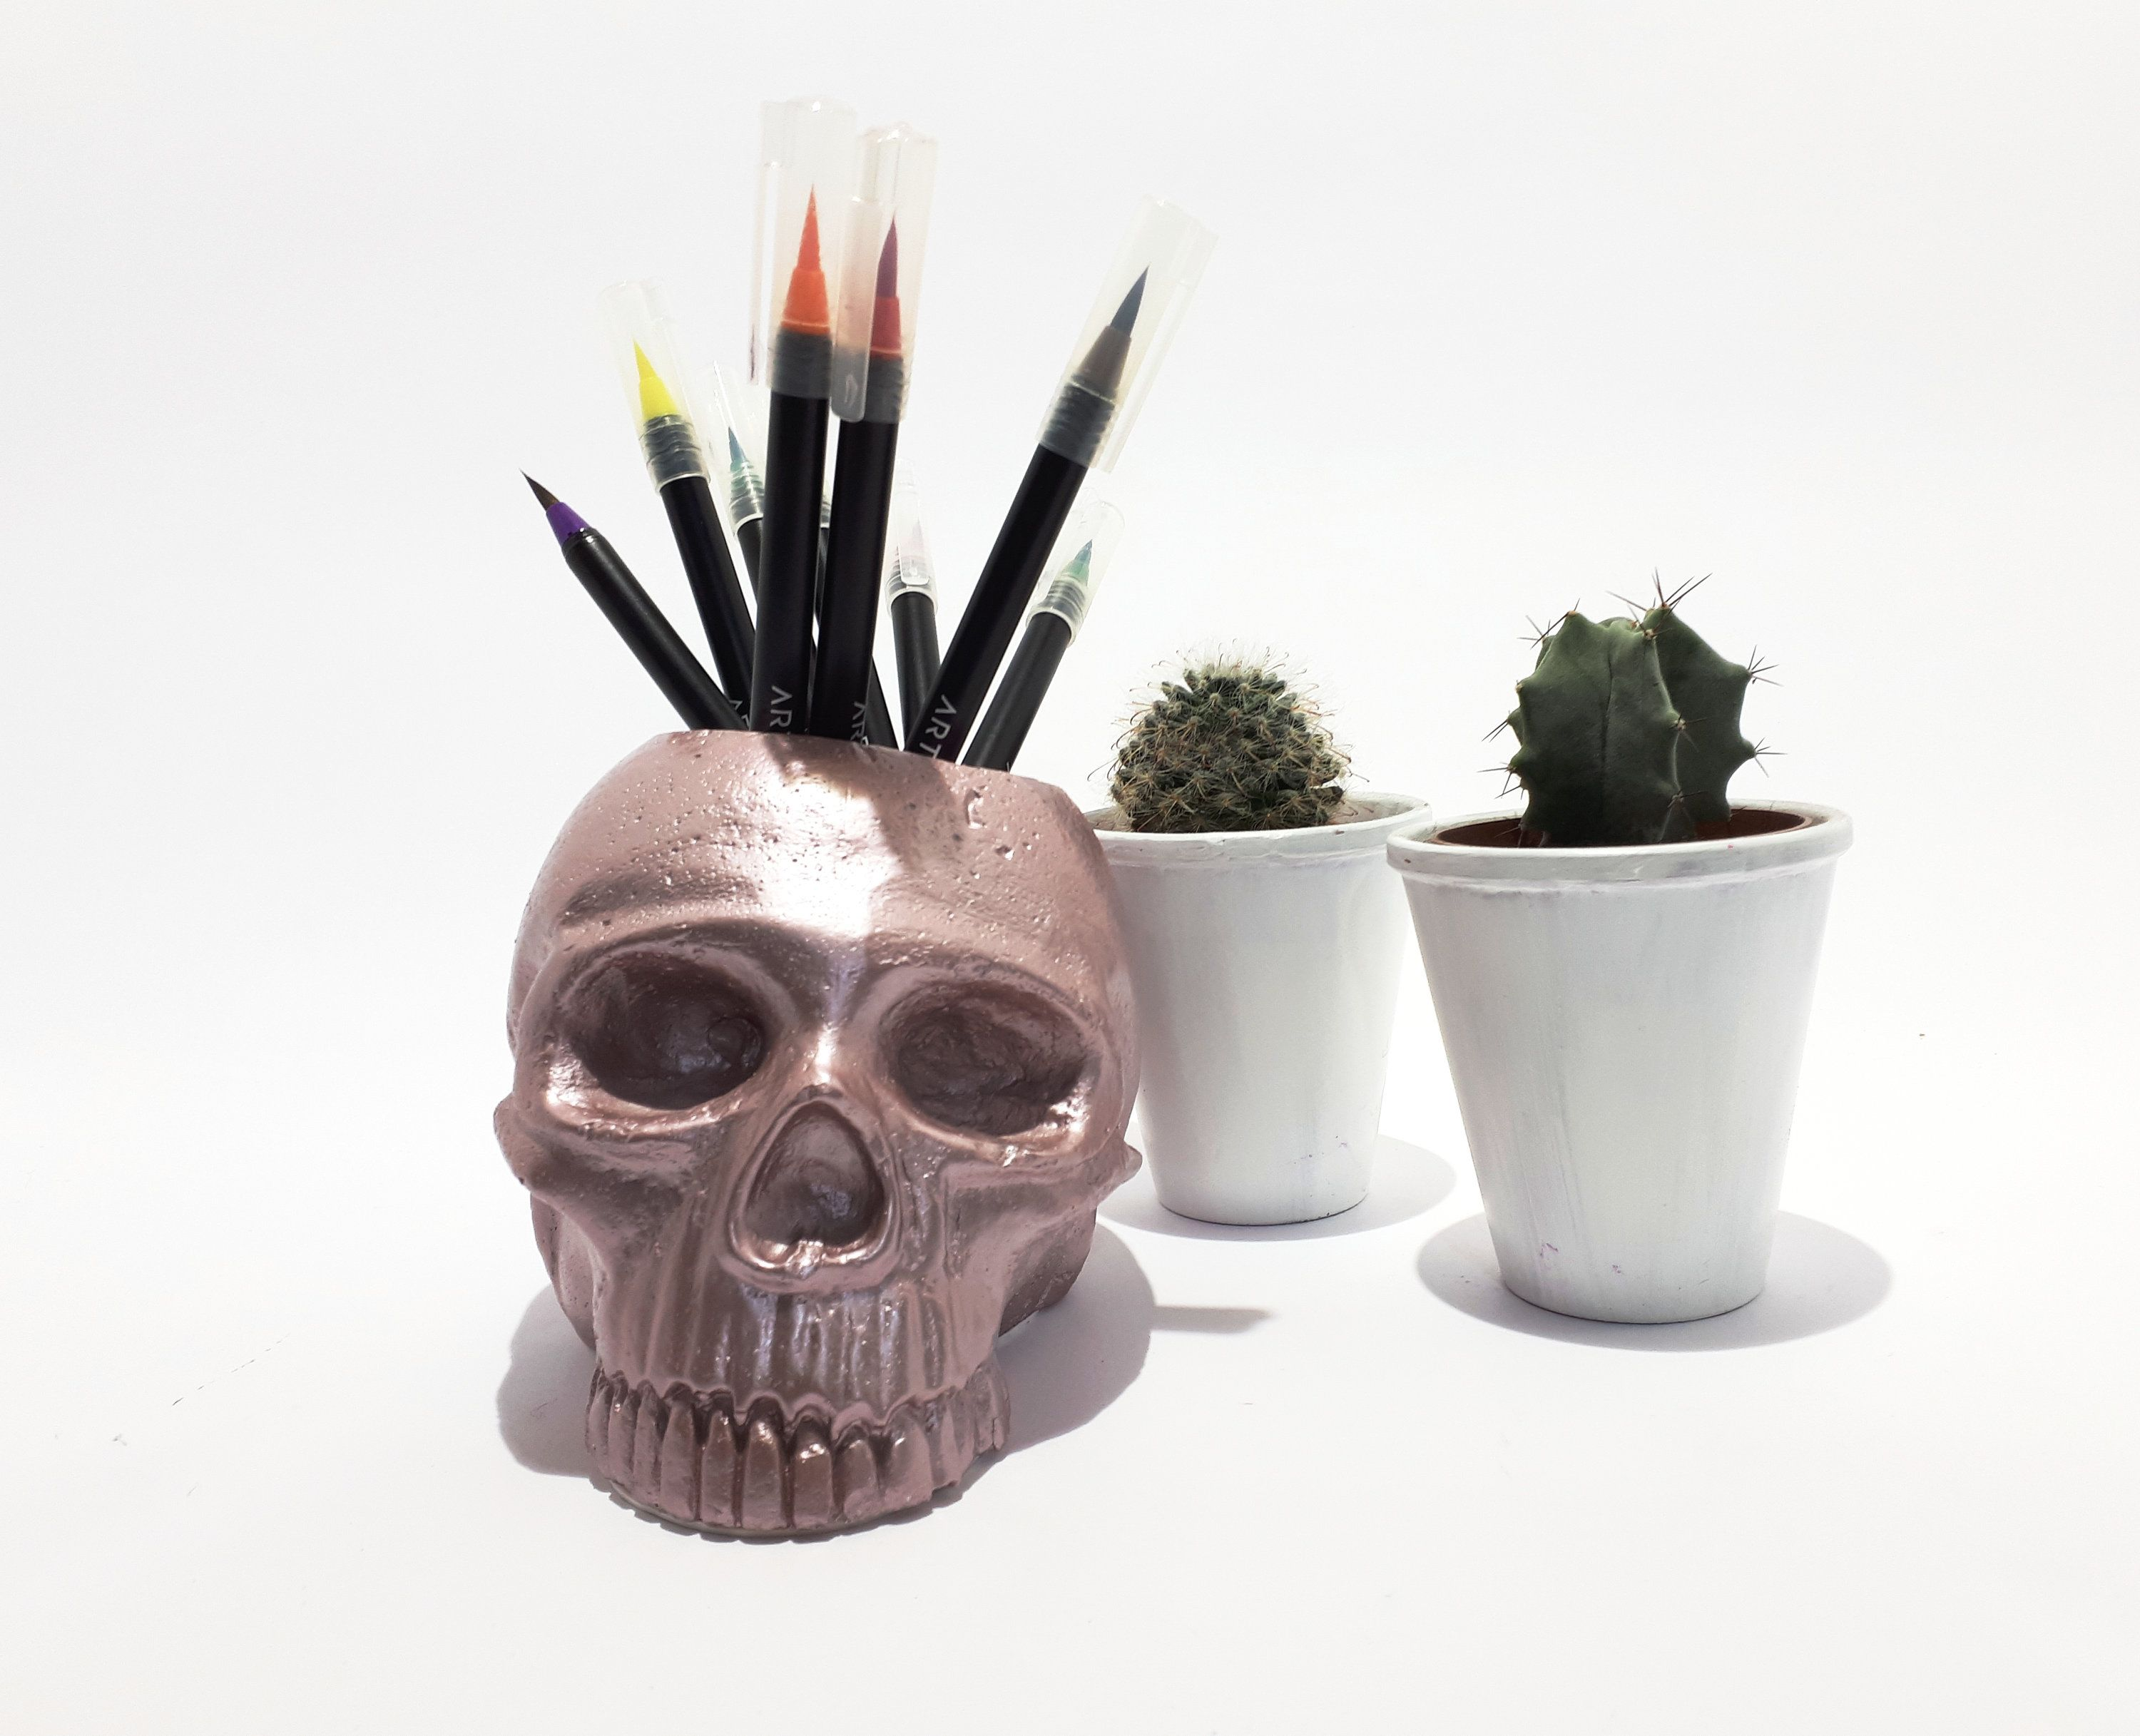 Decorative skull, Skull pot, Make up brush holder in 2019